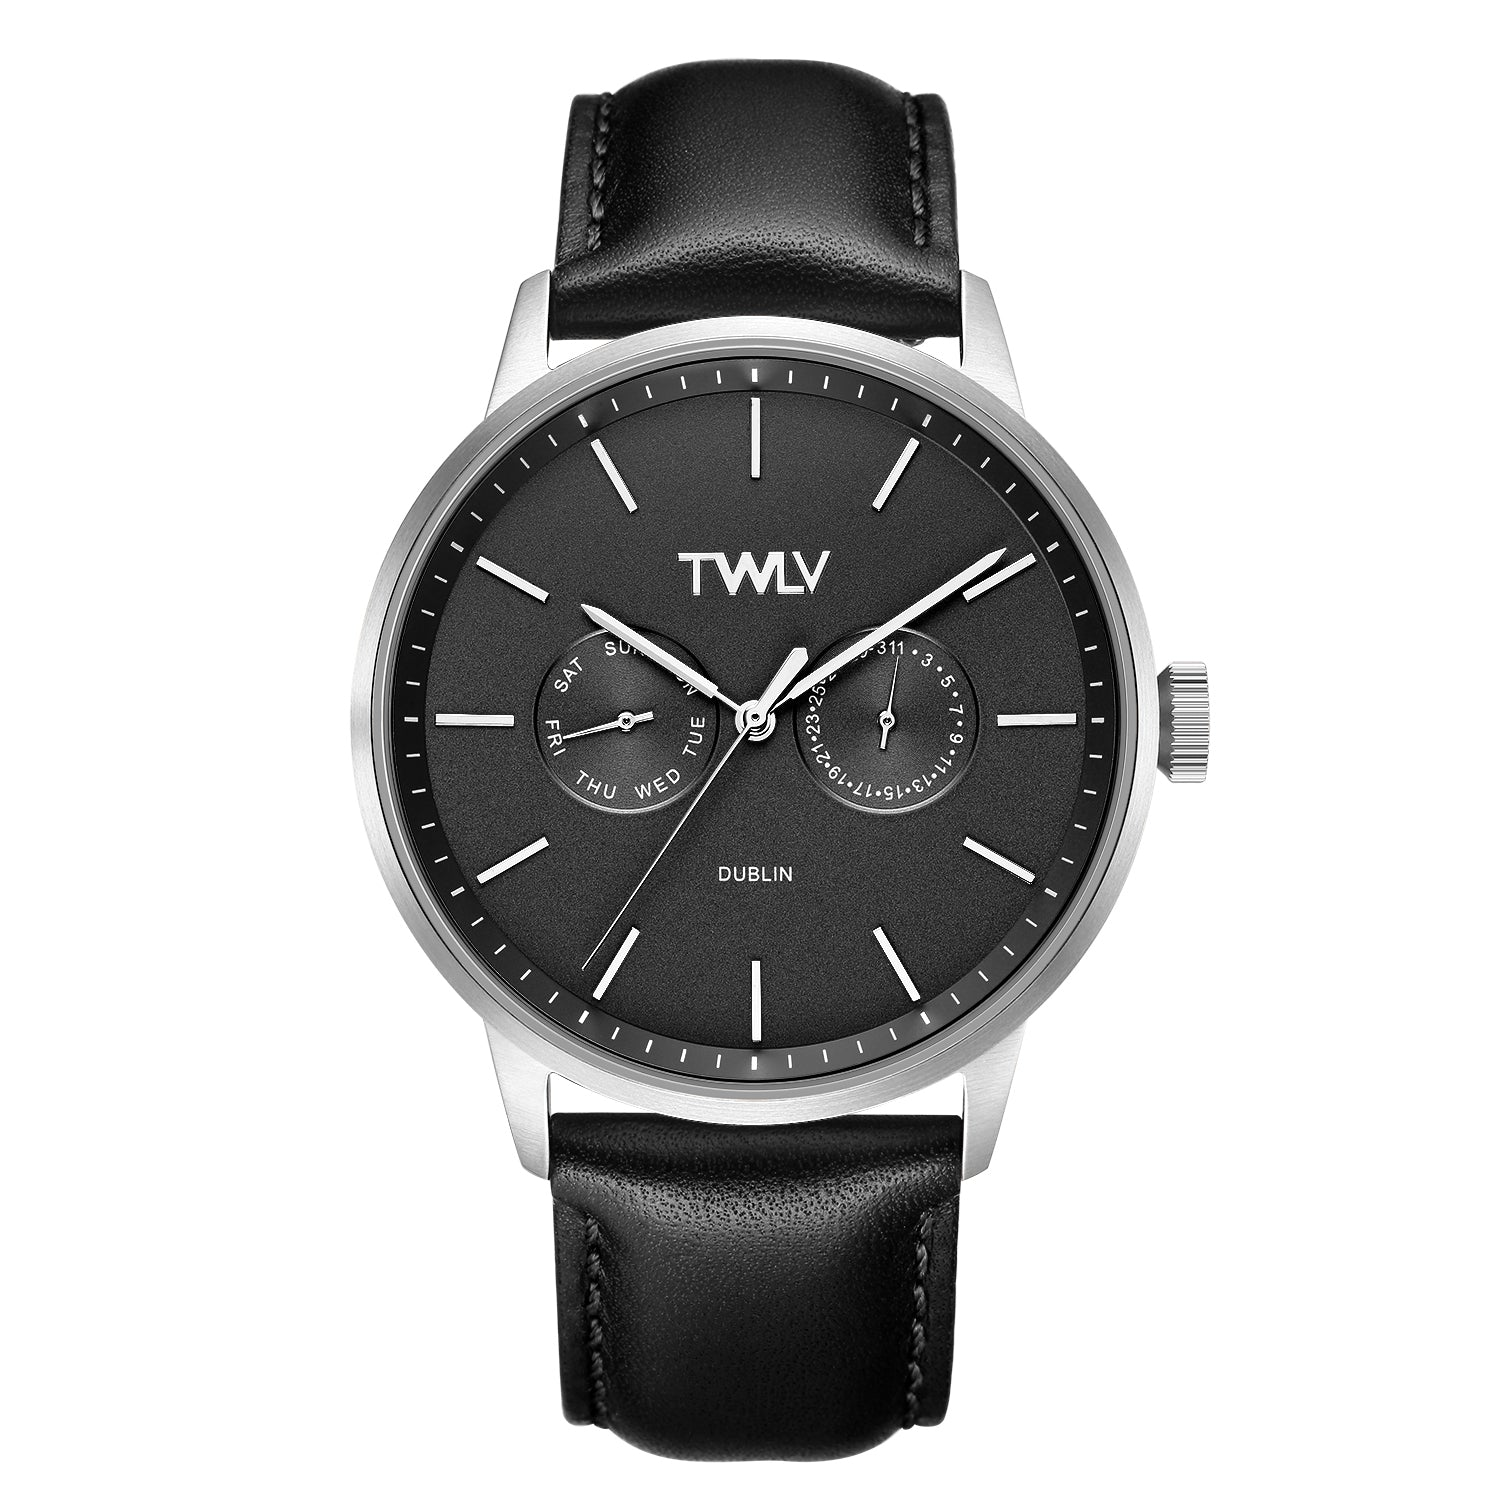 TW4402 TWLV Mr. King Black Strap Steel